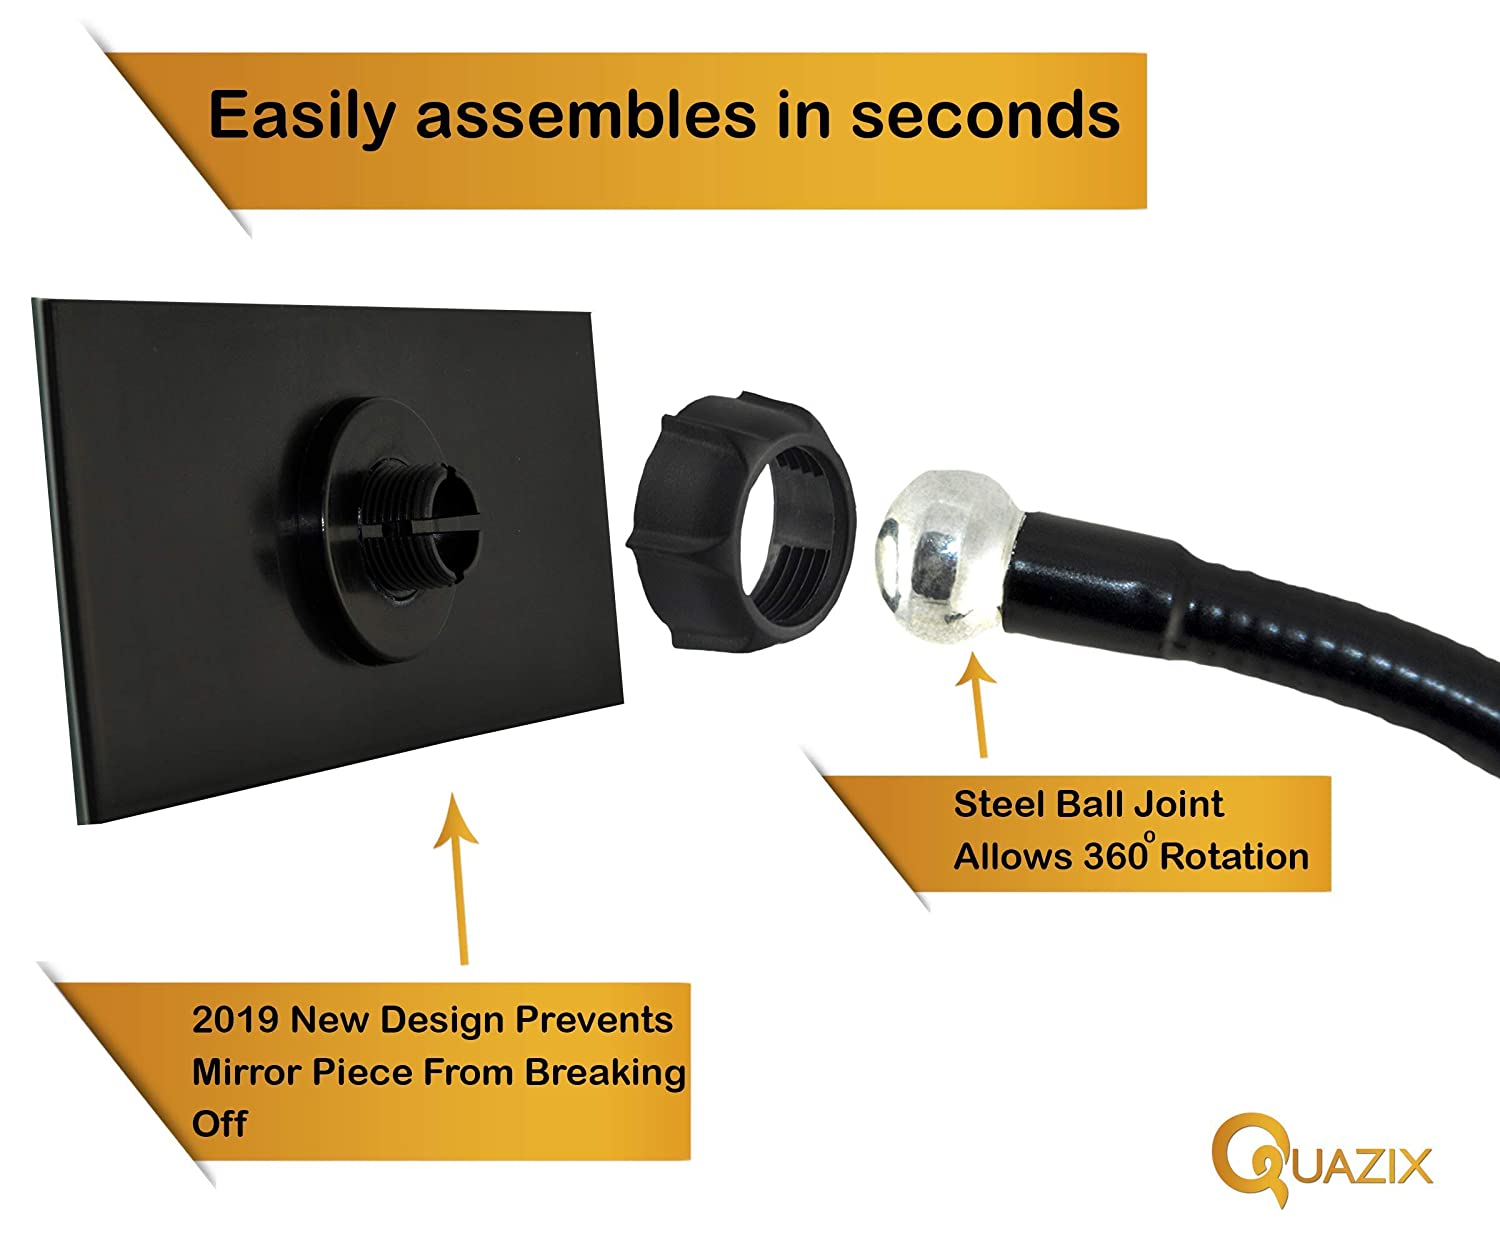 Black Quazix Clip On Desk Mirror for Office Security See Whos Sneaking up Behind You!